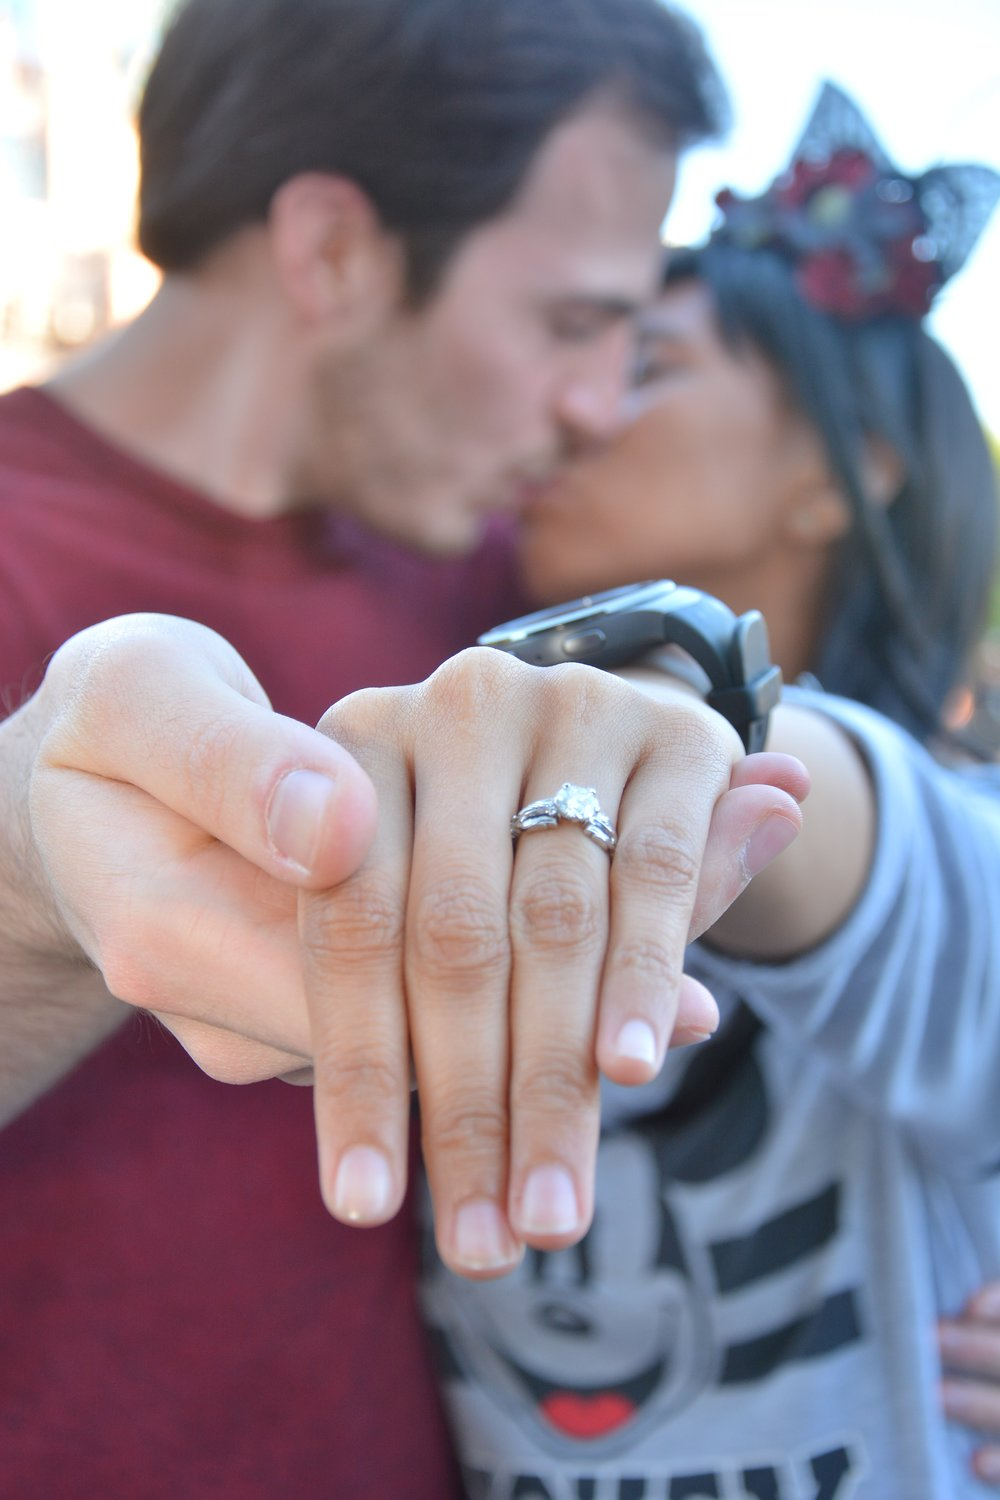 David and Sharon, newly engaged at Disneyland with their custom Kingdom Hearts Oathkeeper and Wayfinder solitaire engagement ring by Takayas Custom Jewelry